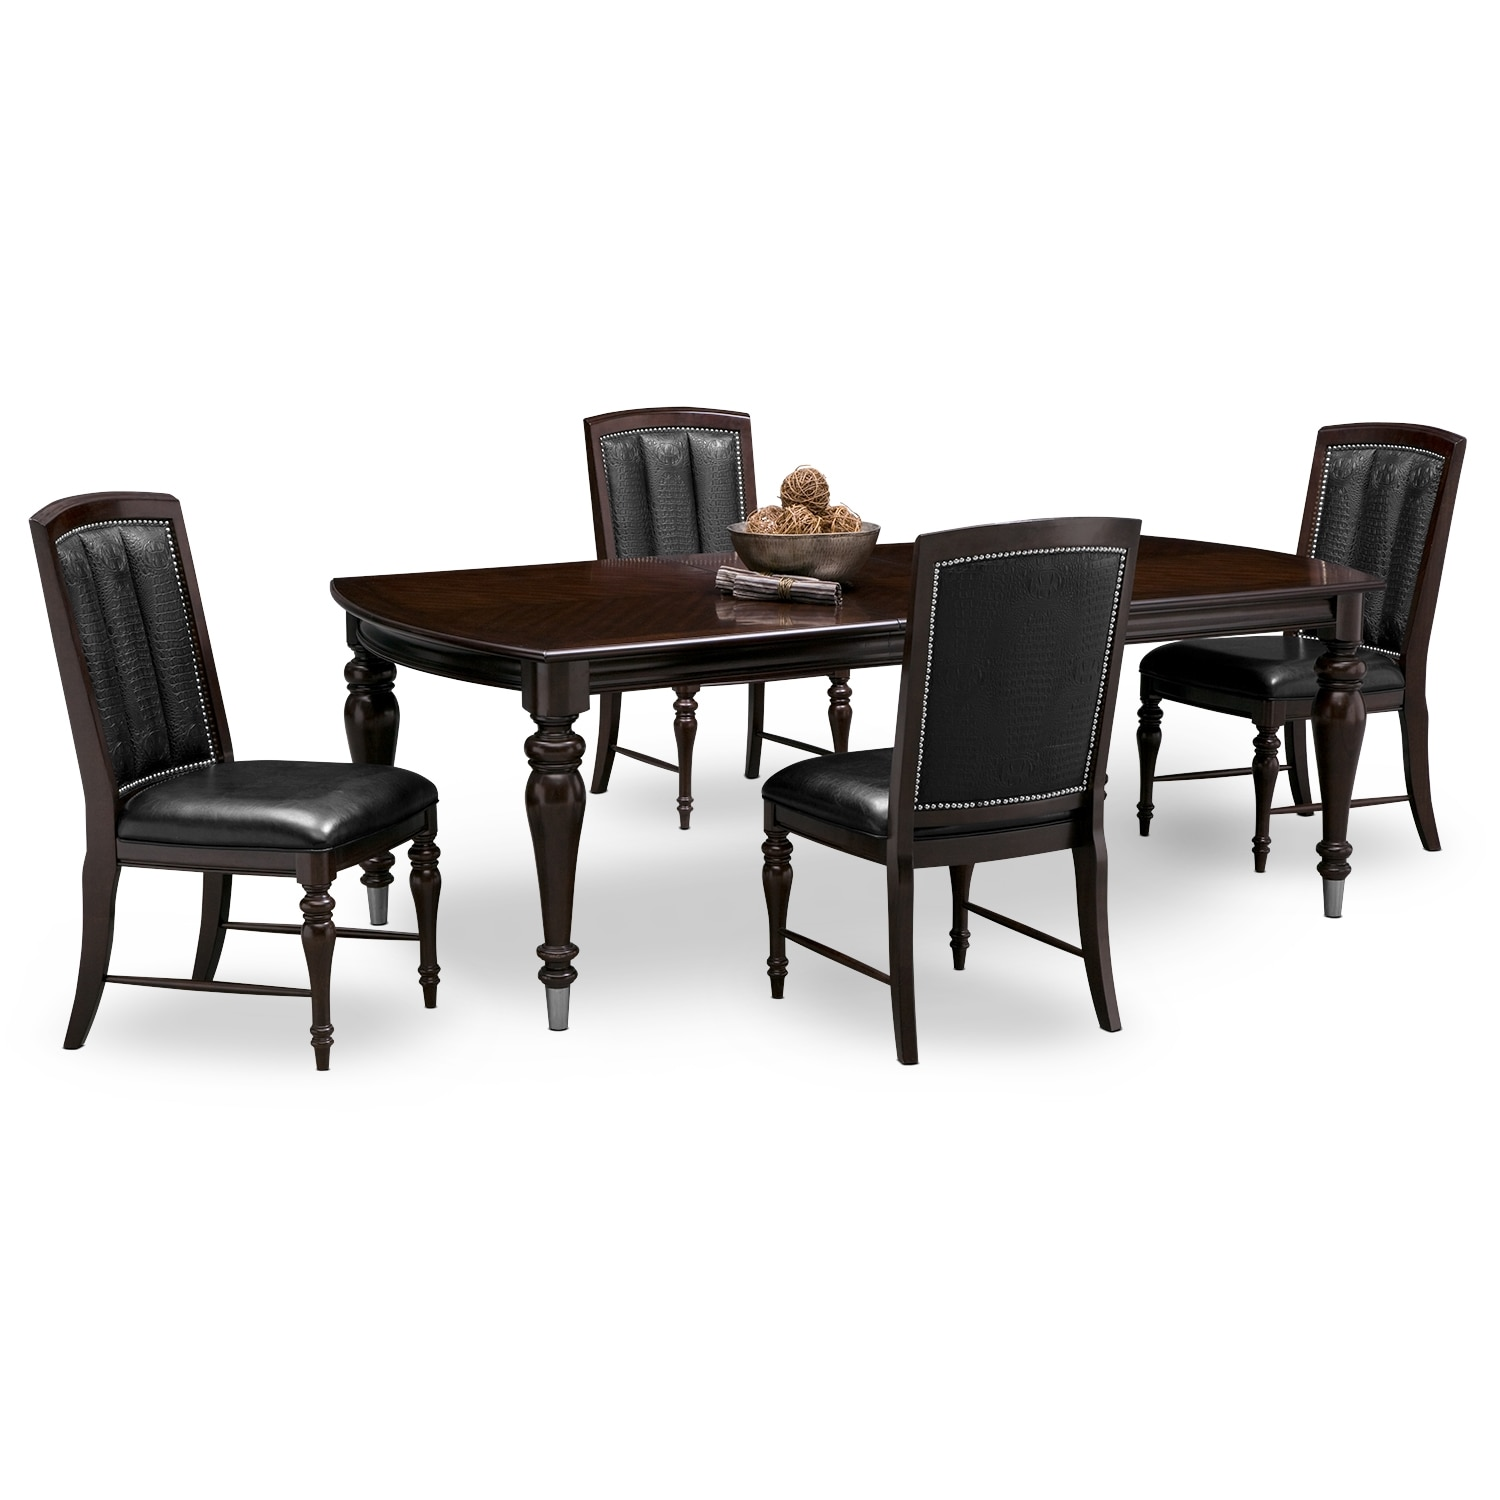 Awesome $1,189.95 Esquire Table And 4 Chairs   Cherry By American Signature